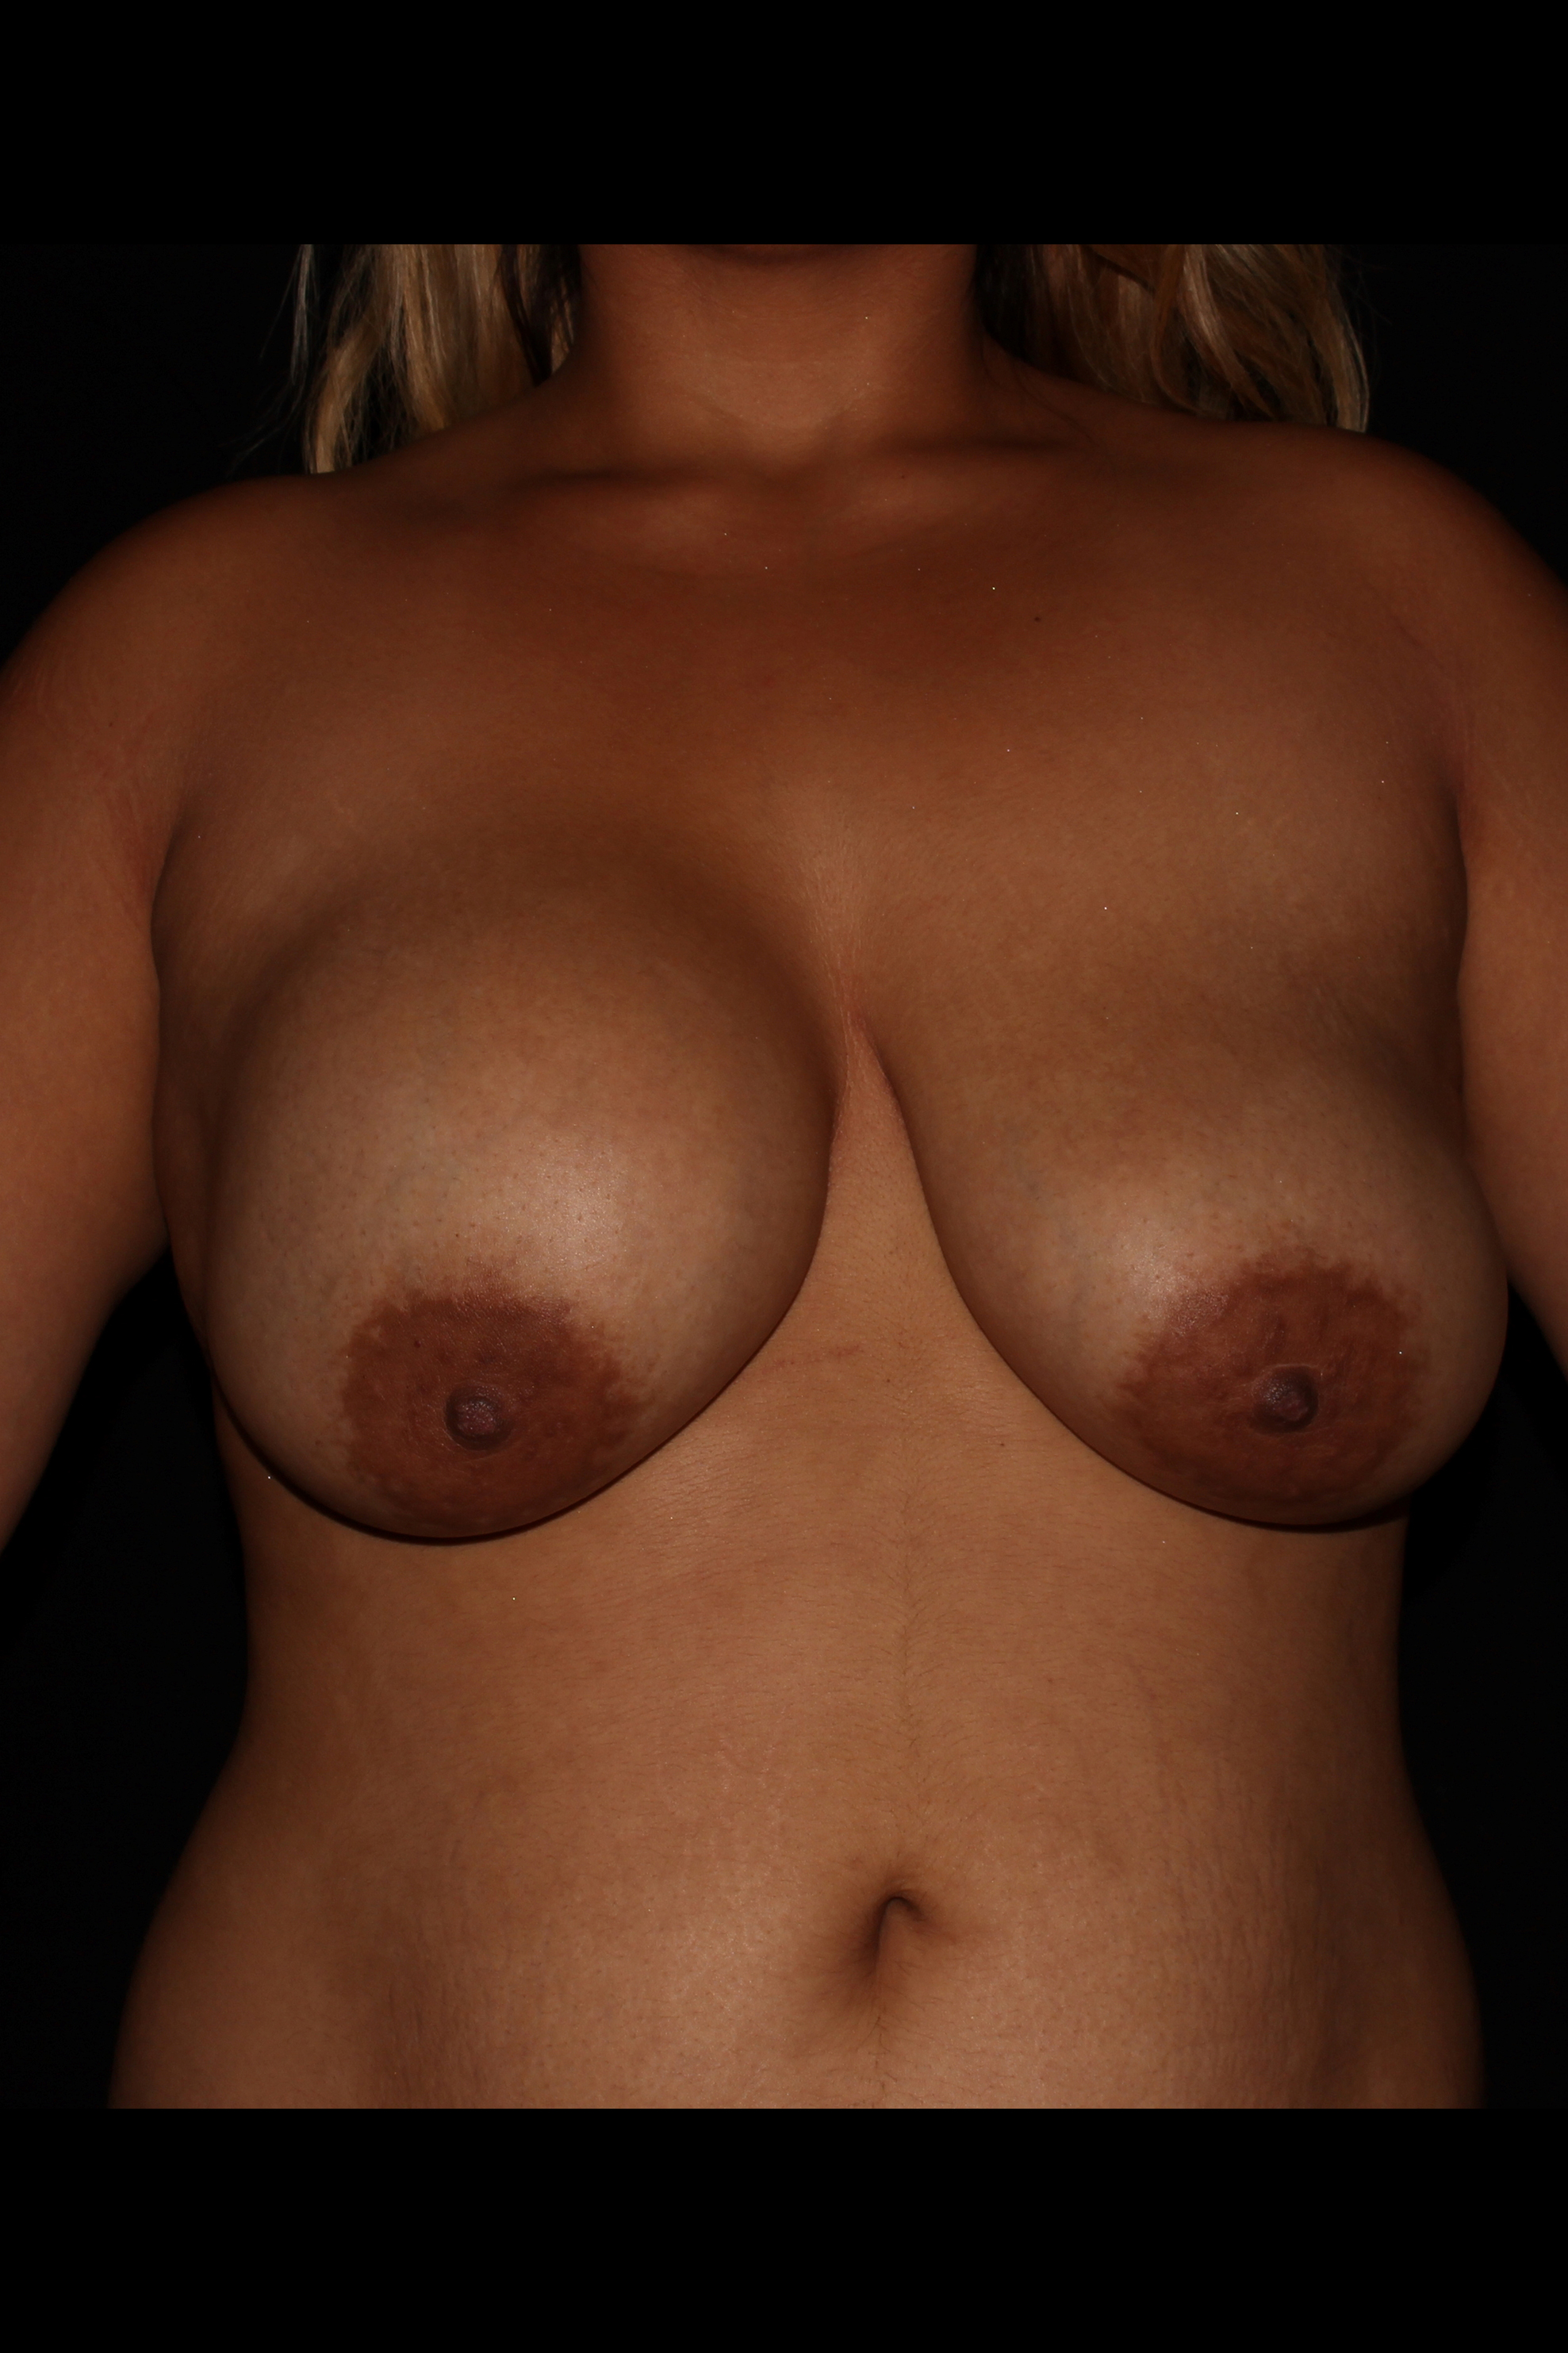 Before Breast Lift - BREAST LIFT WITH IMPLANTS